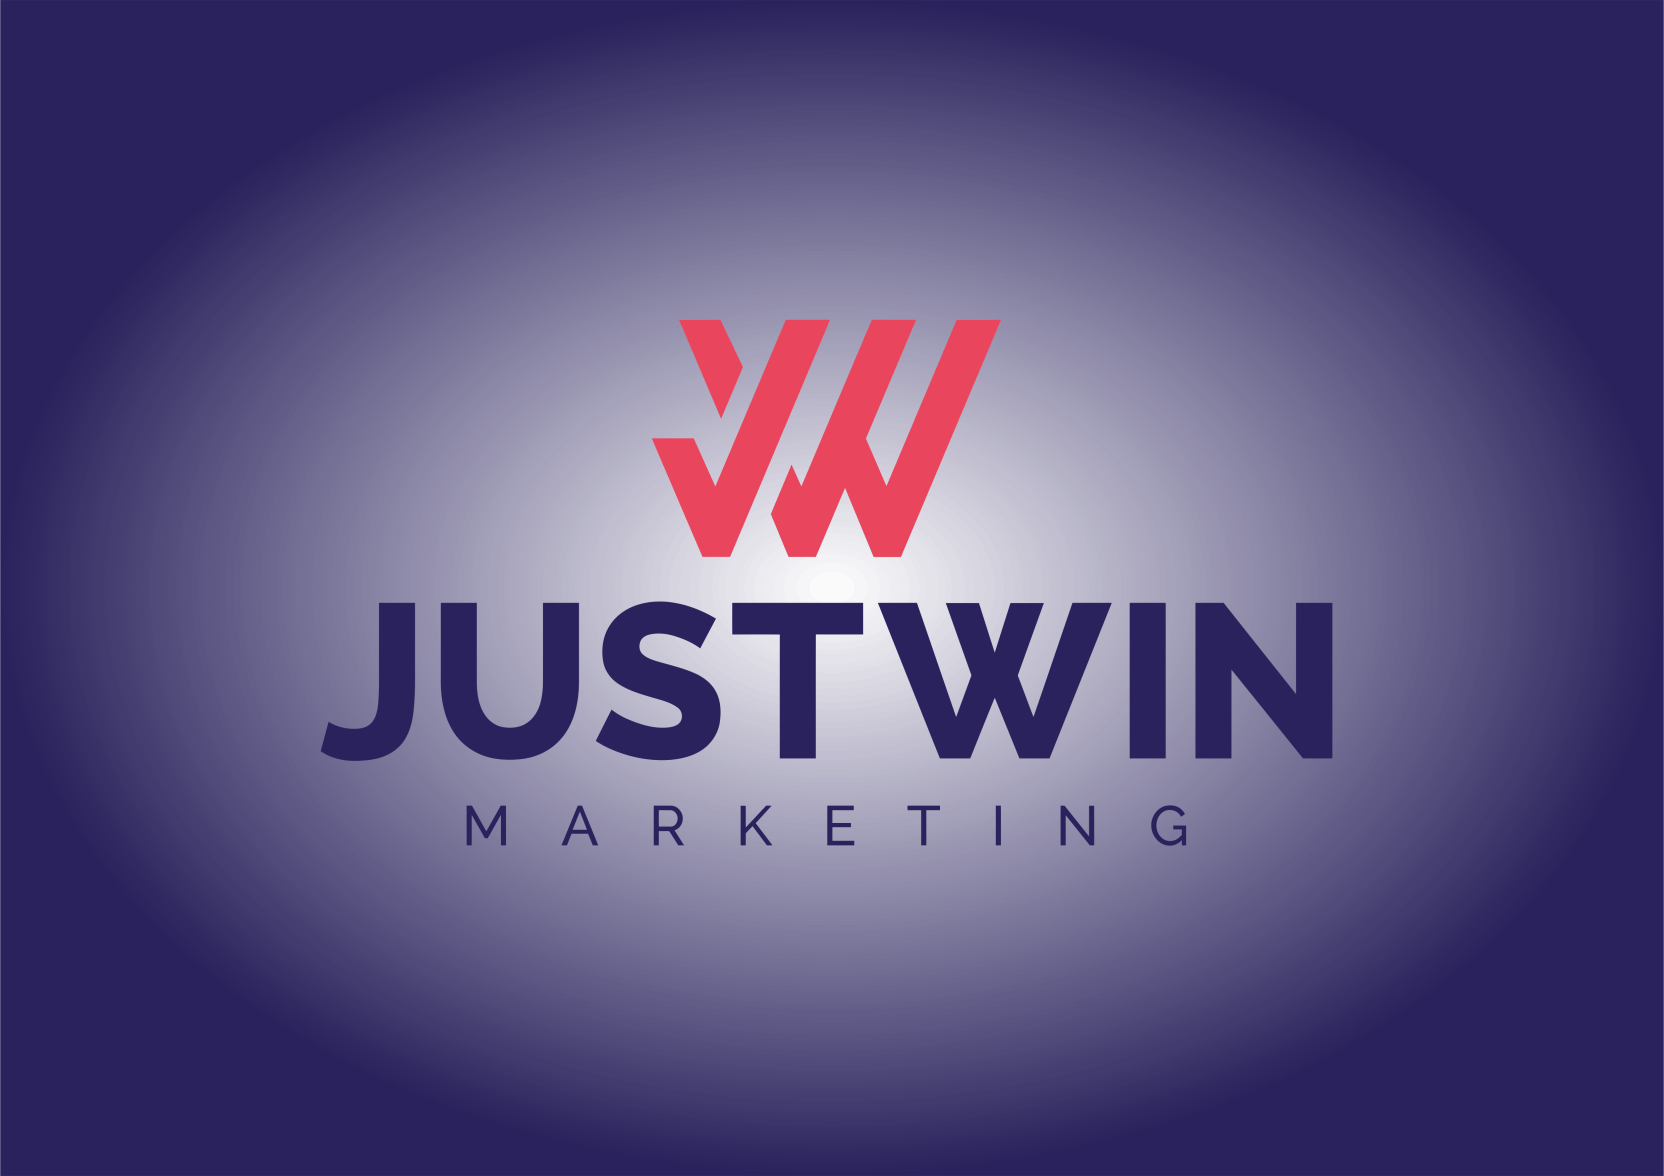 How your company can win with Justwin leaflet delivery and distribution